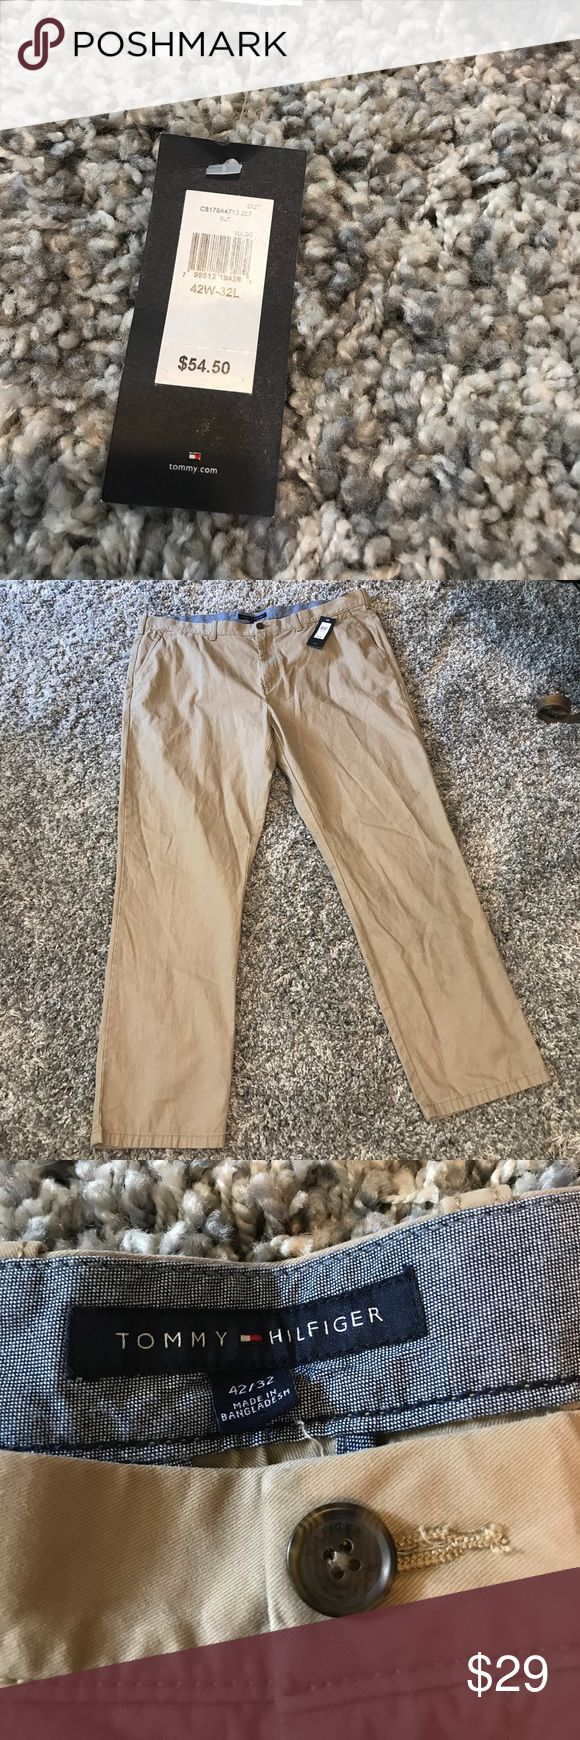 NWT Tommy Hilfiger Men's Khaki Pants 42W 32L New with Tags! Awesome Tommy Hilfiger pants! Reasonable offers accepted! Bundle for a private discount! Tommy Hilfiger Pants Chinos & Khakis